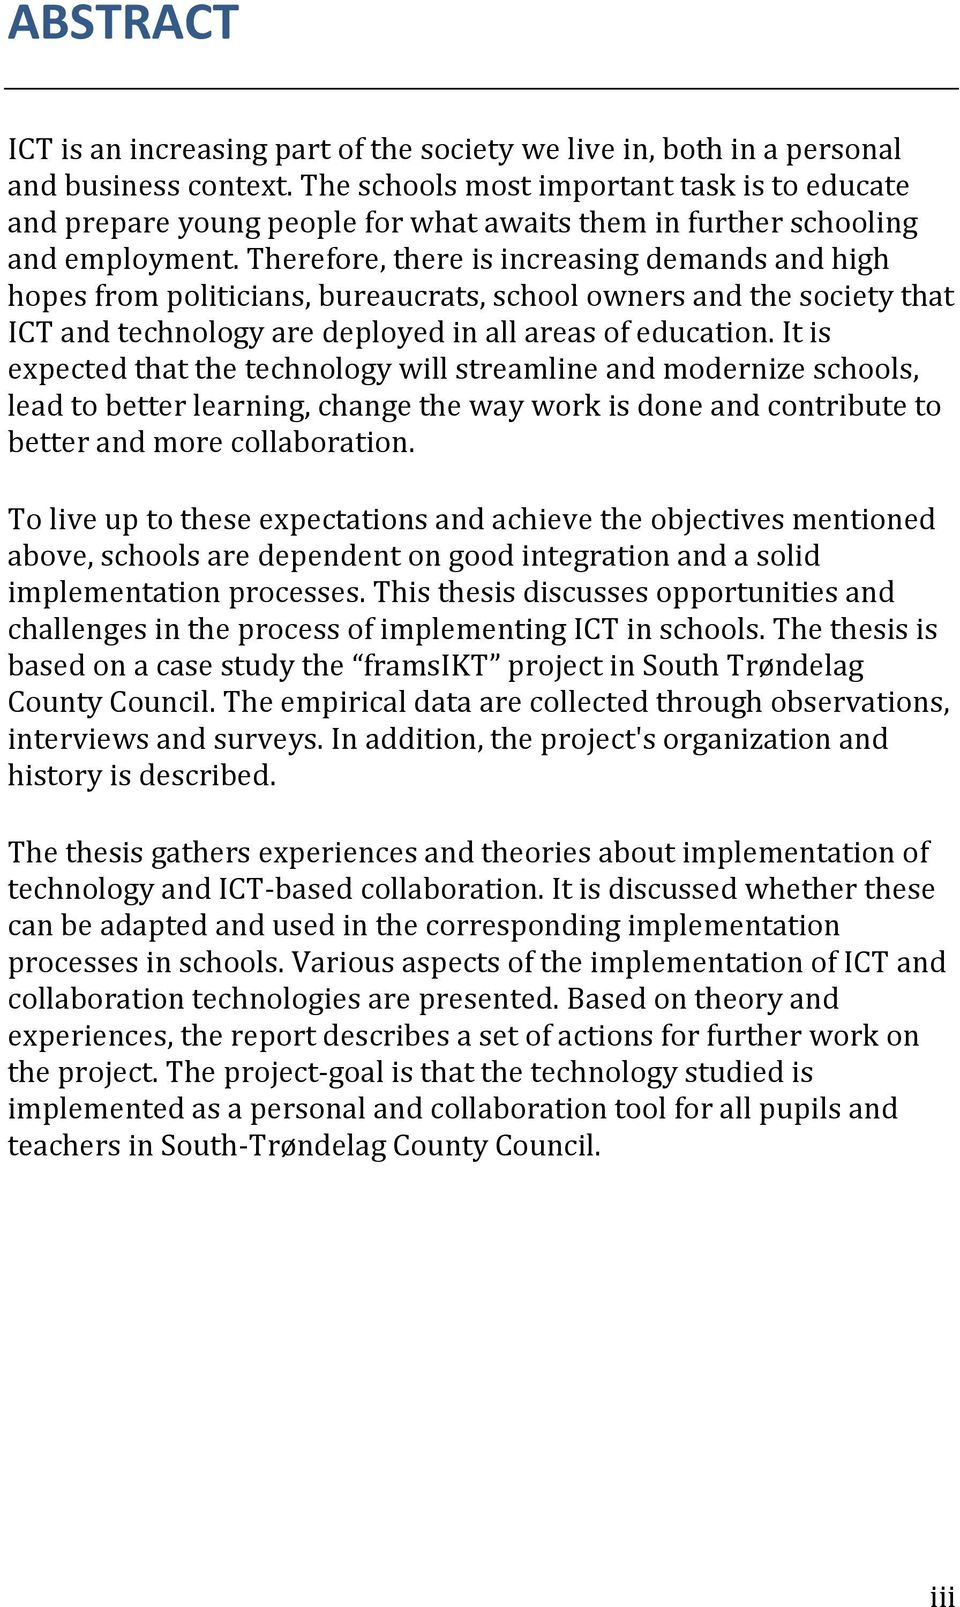 Therefore, there is increasing demands and high hopes from politicians, bureaucrats, school owners and the society that ICT and technology are deployed in all areas of education.